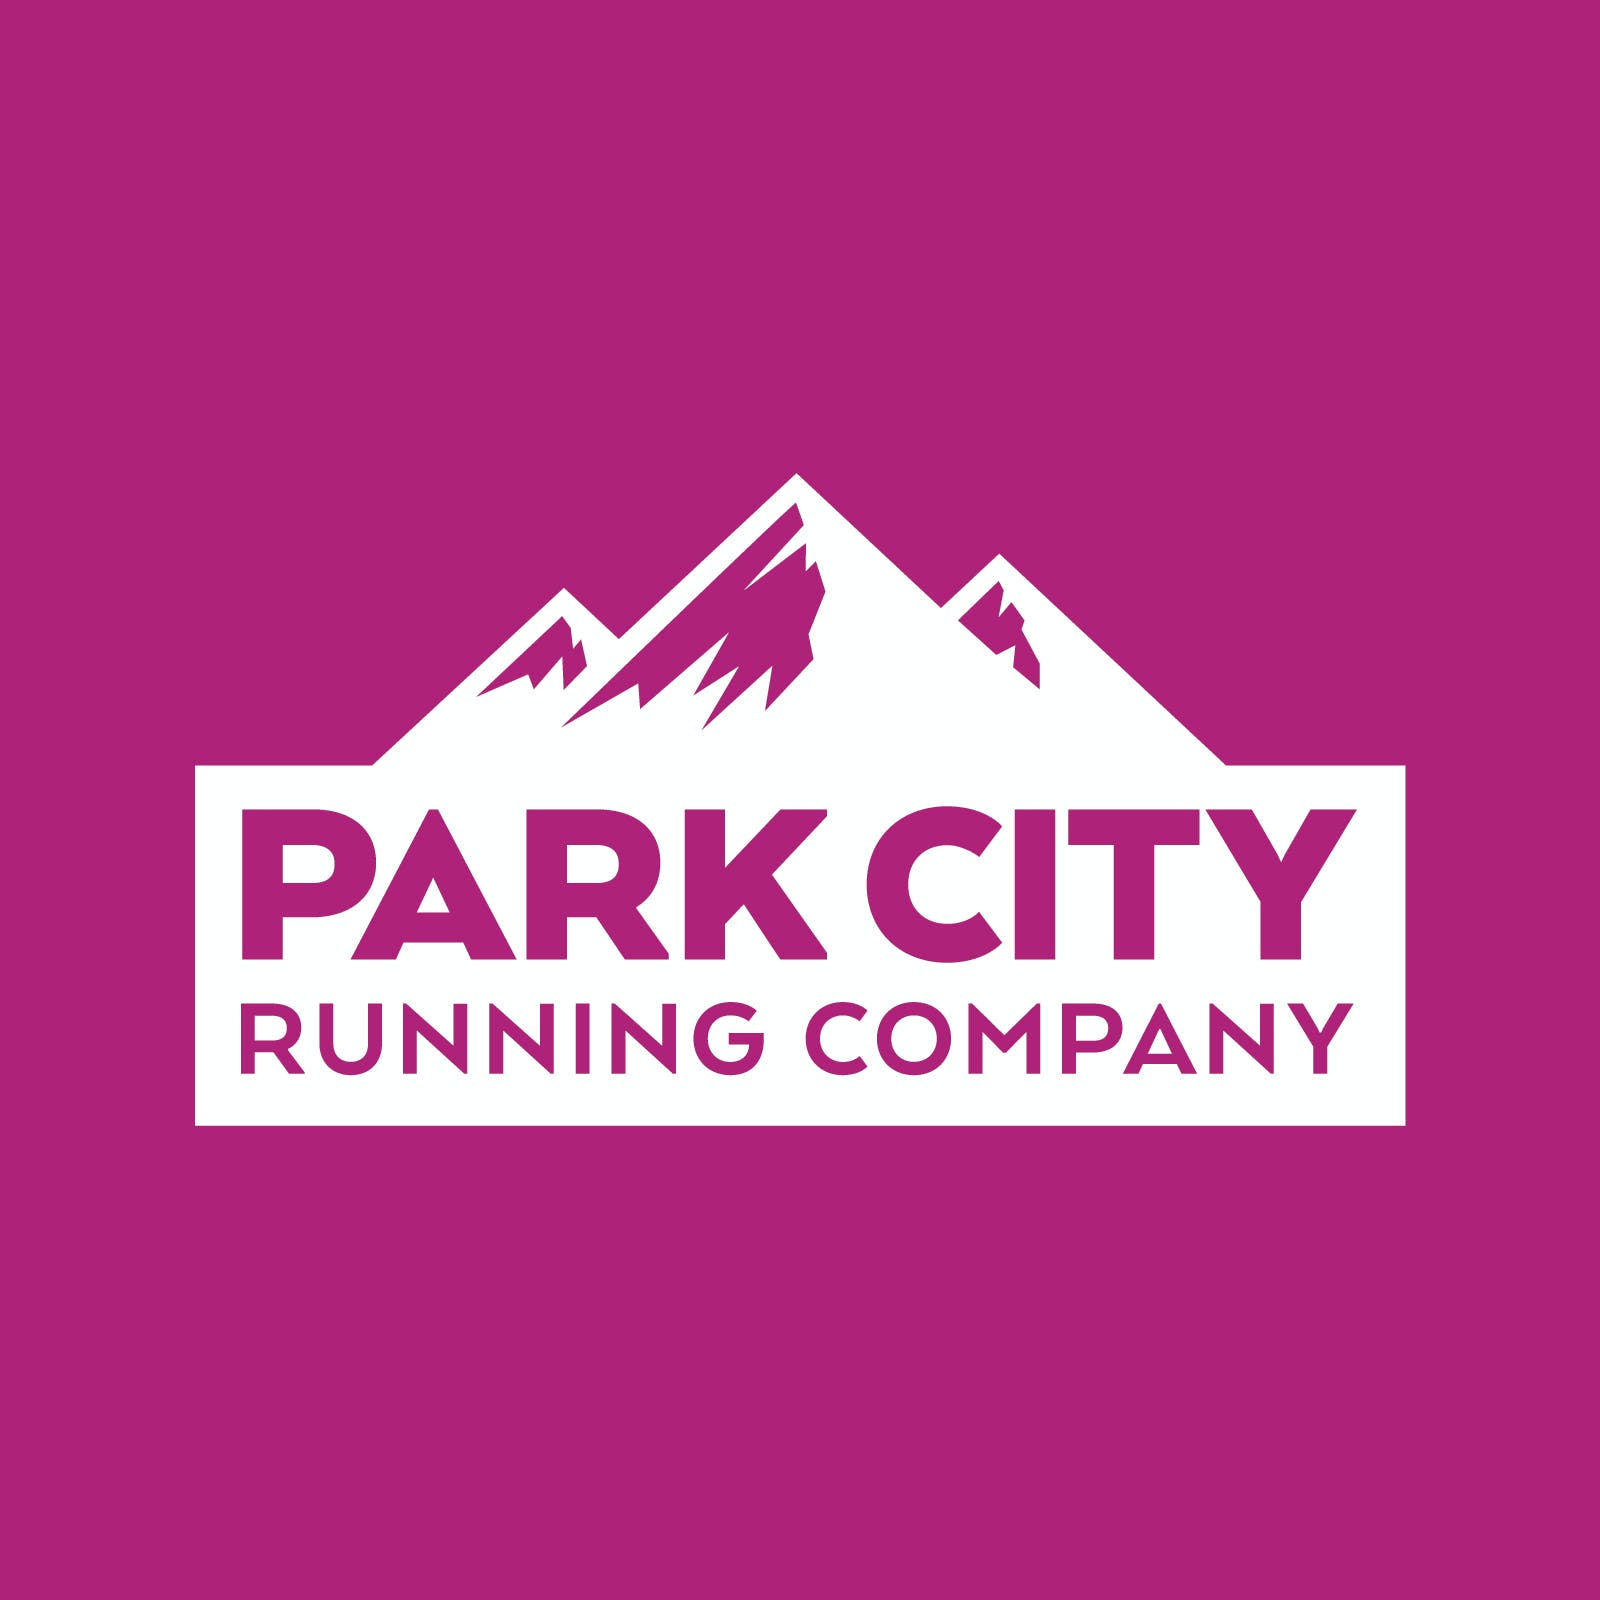 Park City Running Company Logo Brand Design